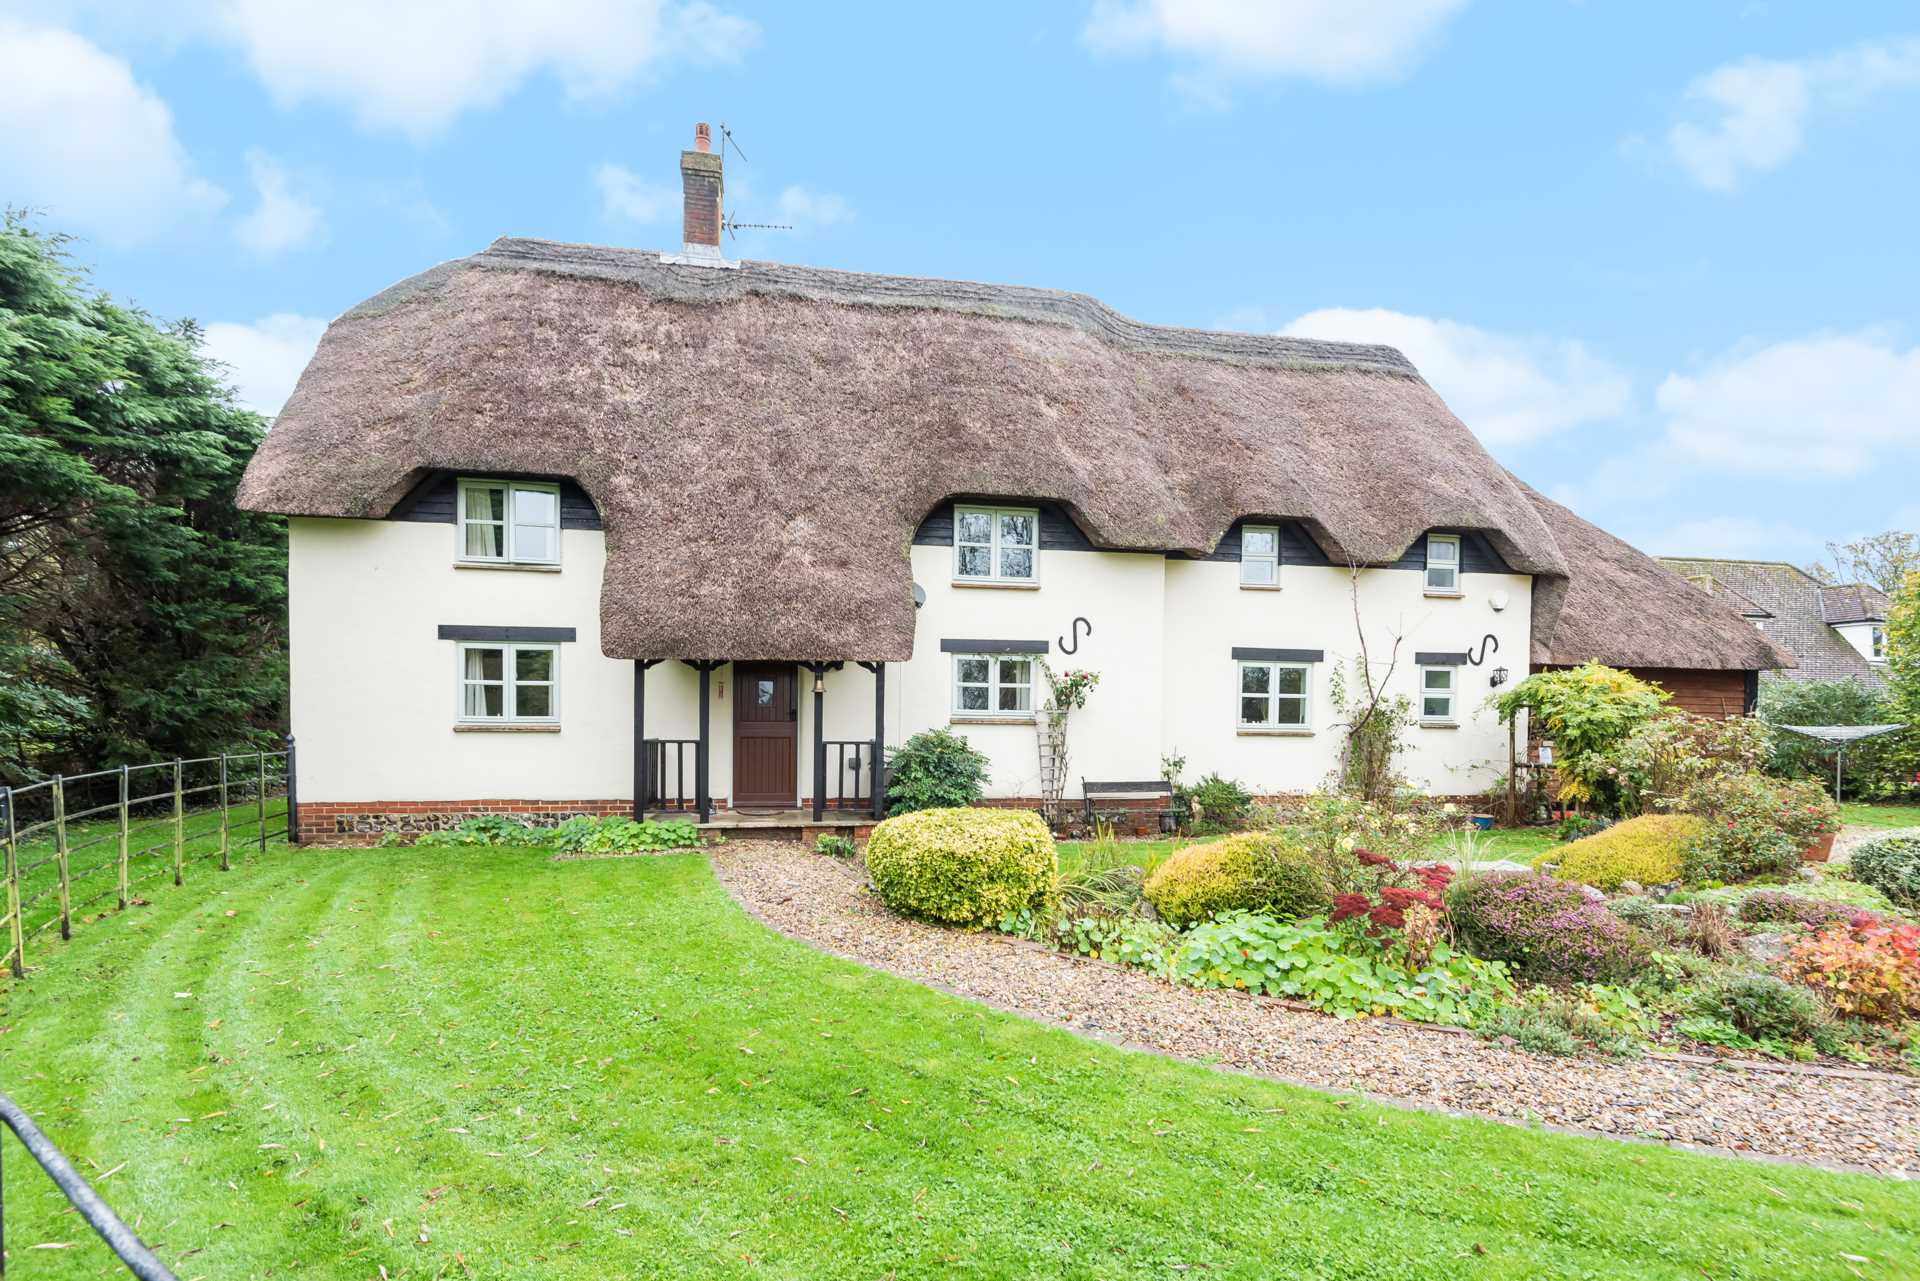 4 bed detached house for sale in Wagtails, Whatcombe Lane, Winterborne Whitechurch, Blandford Forum - Property Image 1